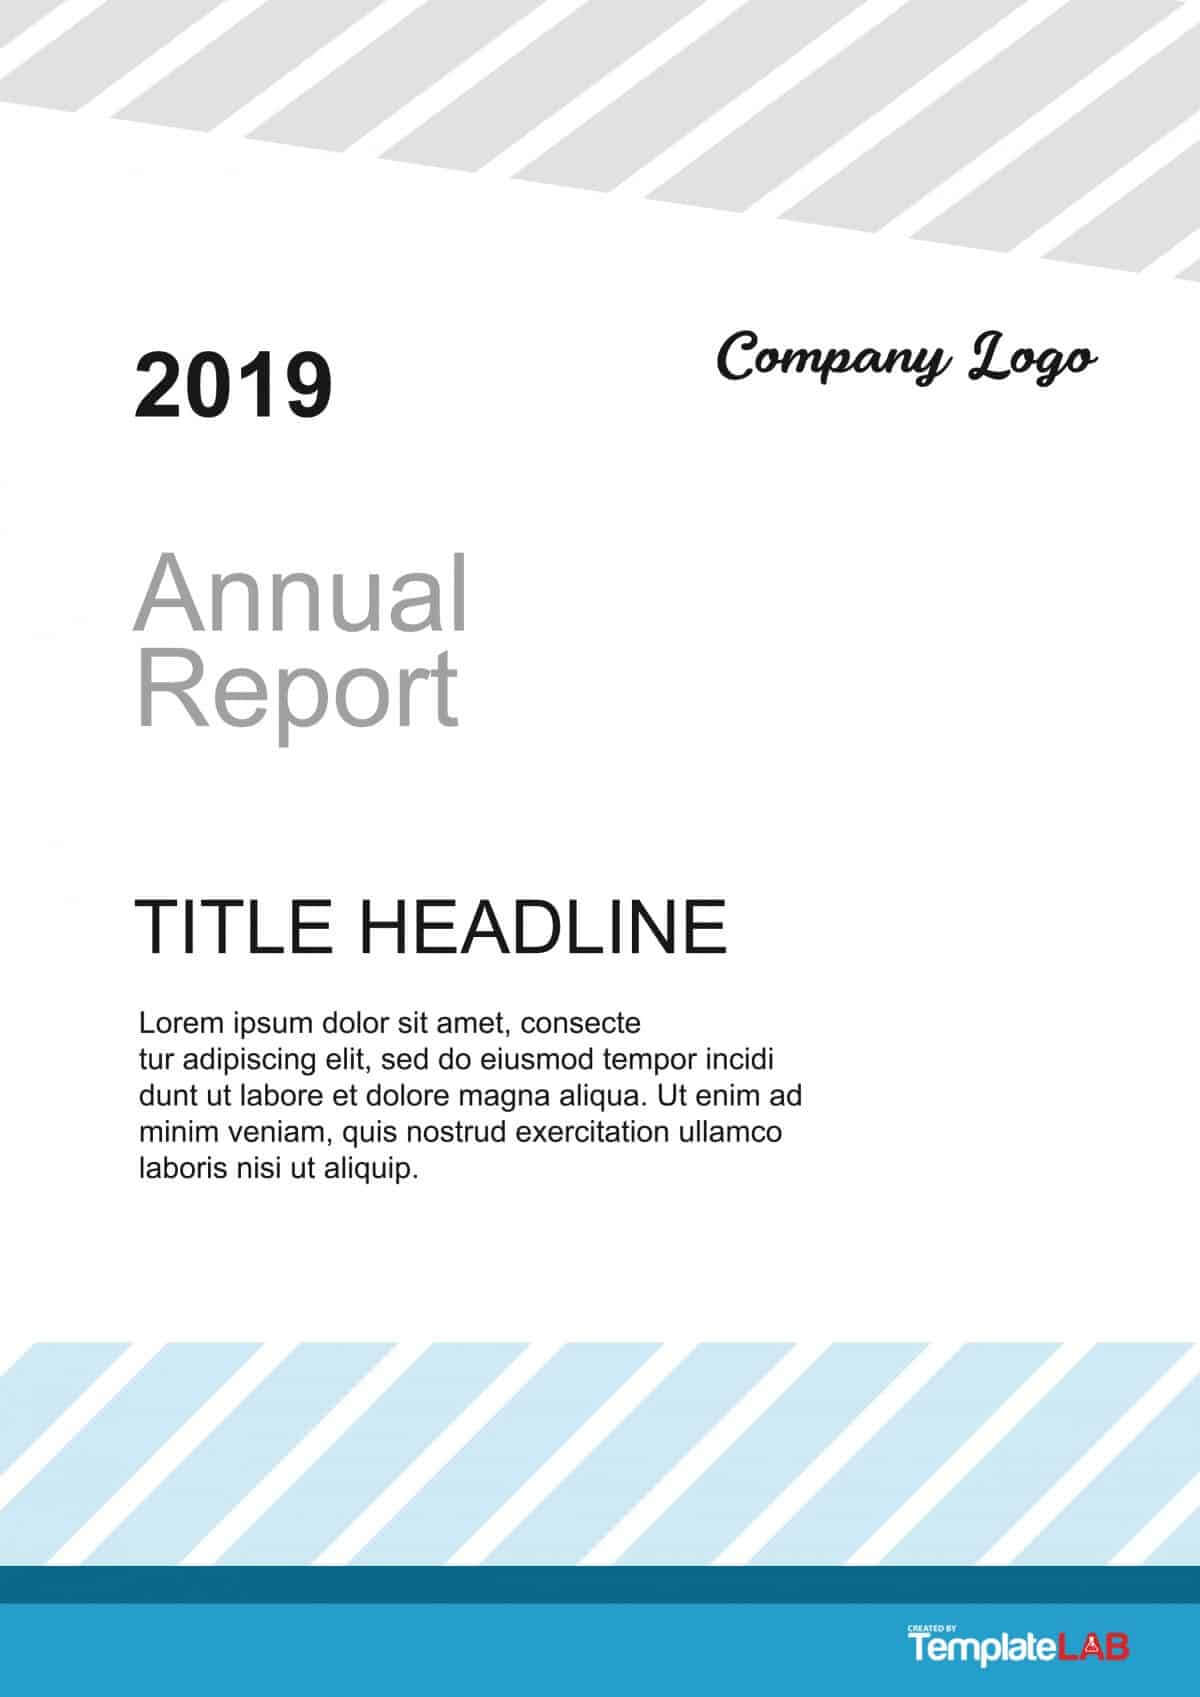 39 Amazing Cover Page Templates (Word + Psd) ᐅ Template Lab Within Technical Report Cover Page Template